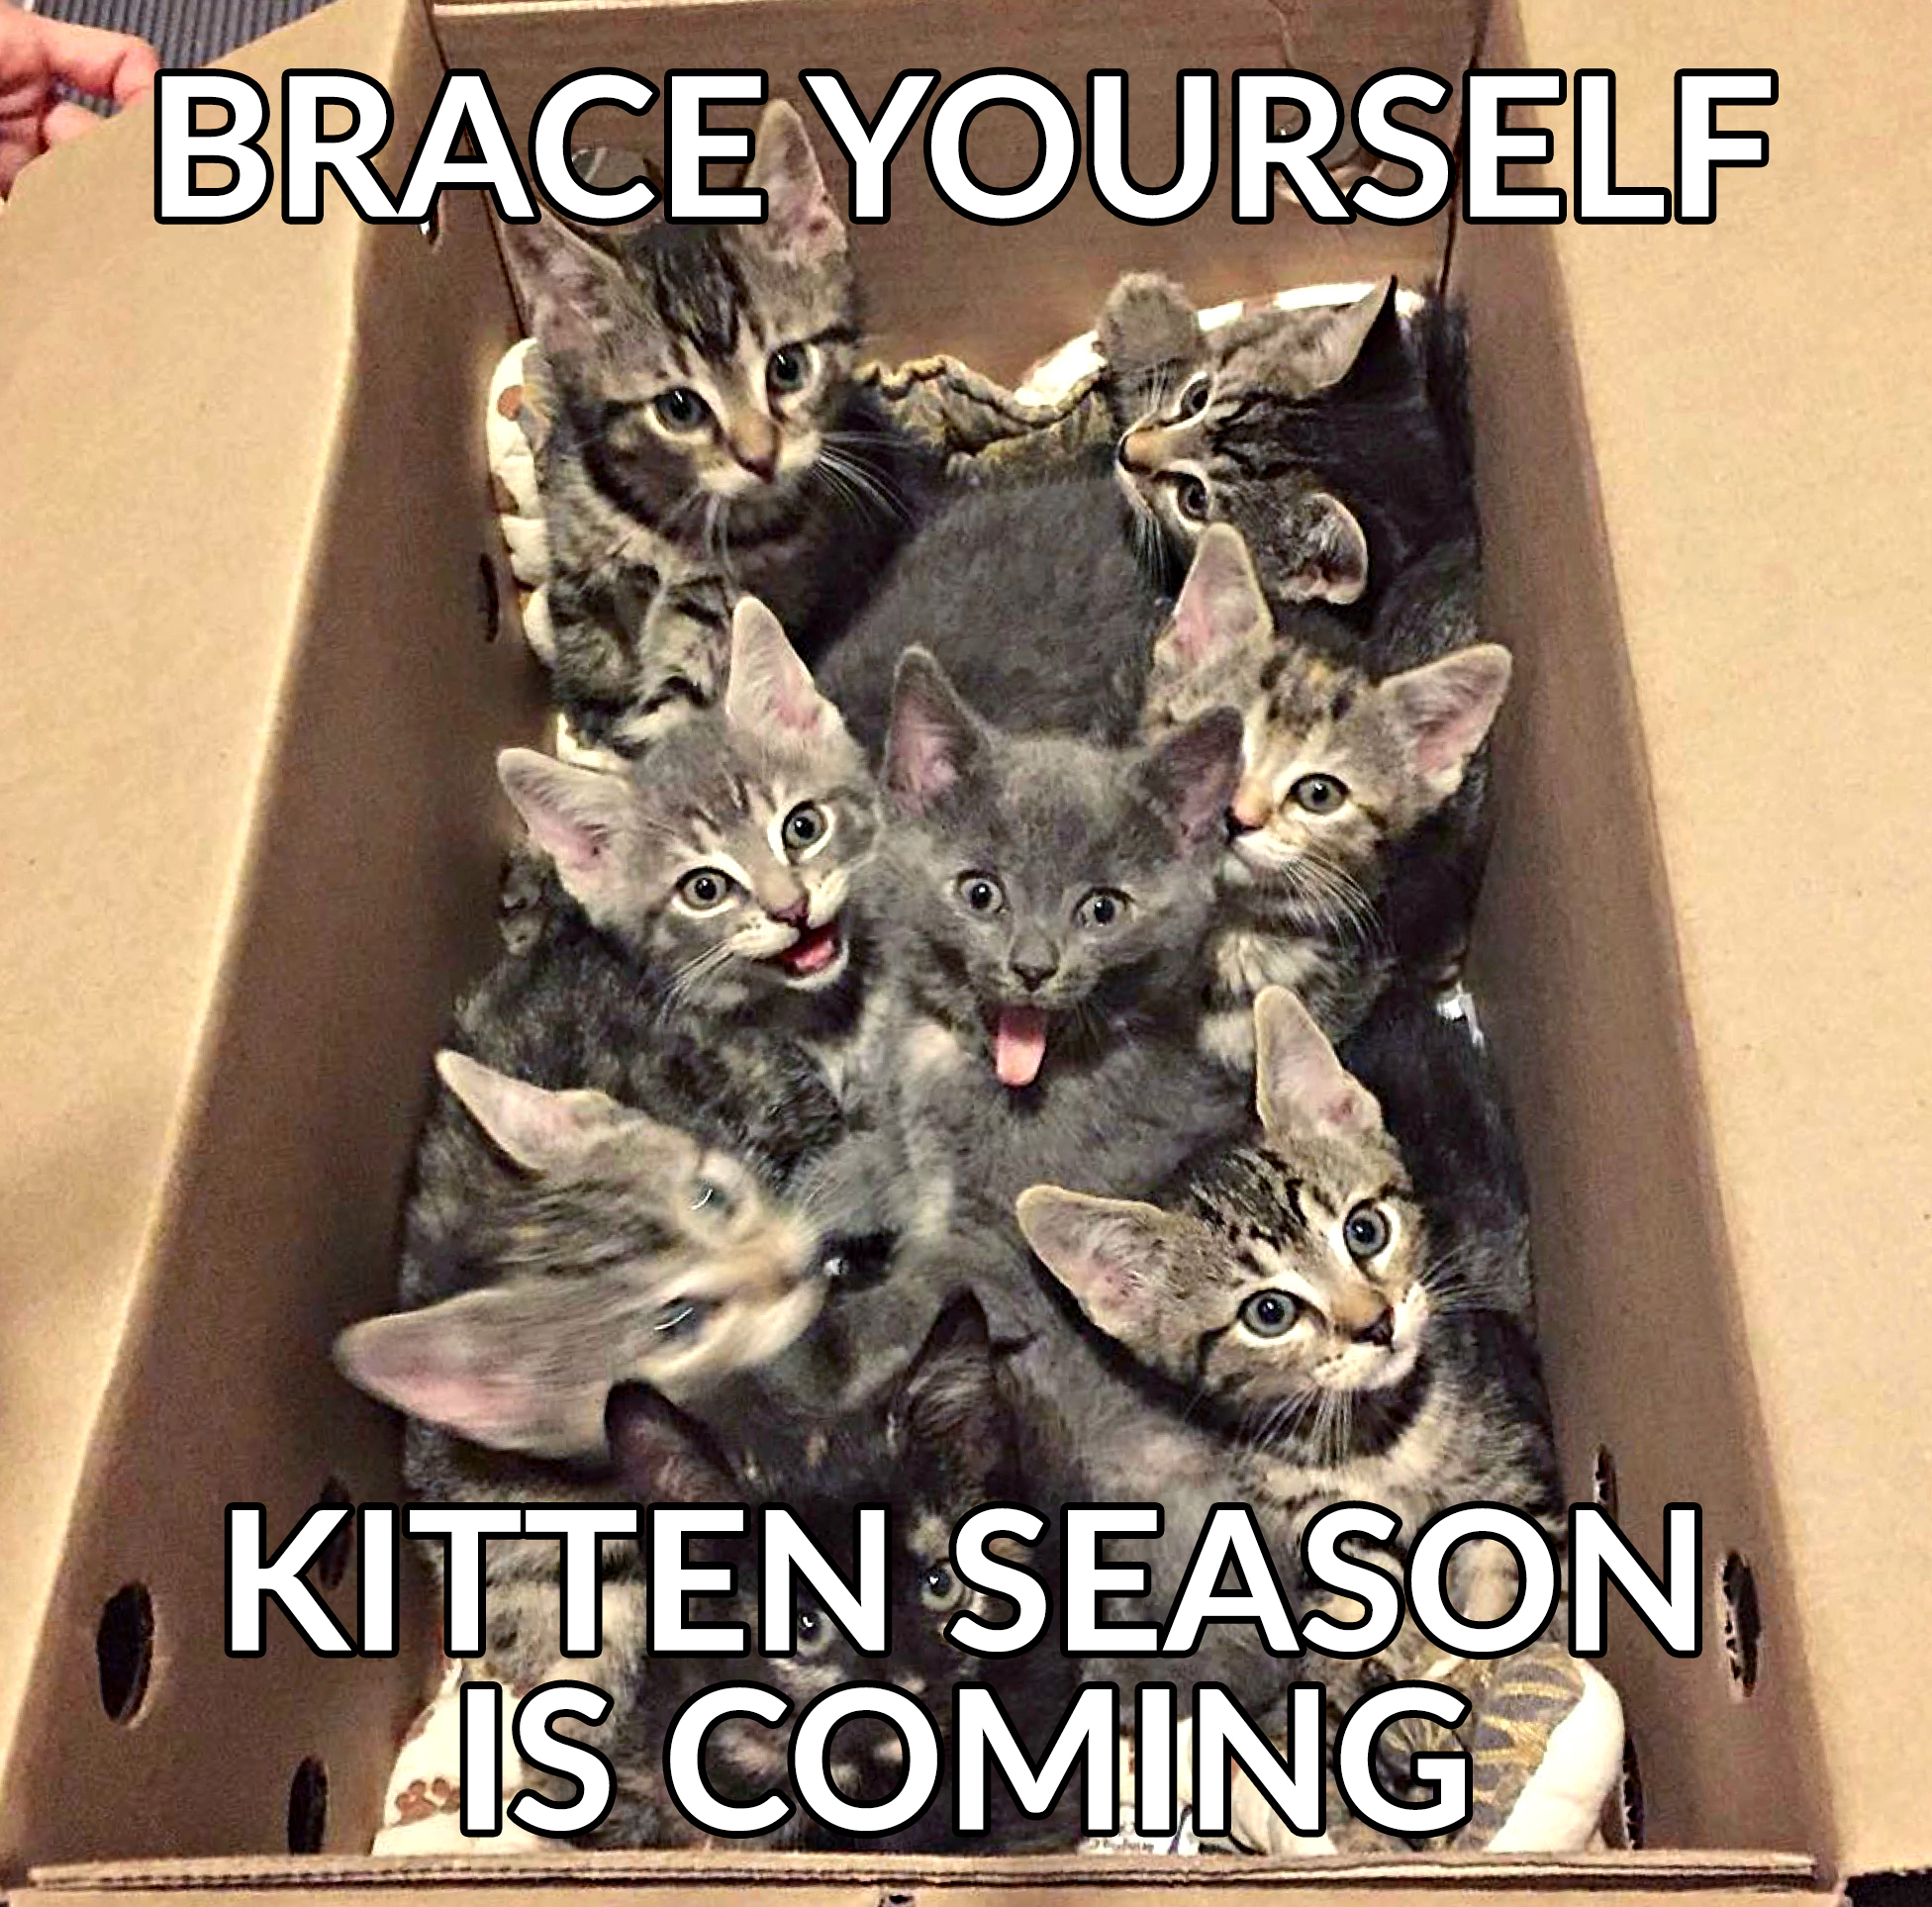 Kitten season is coming